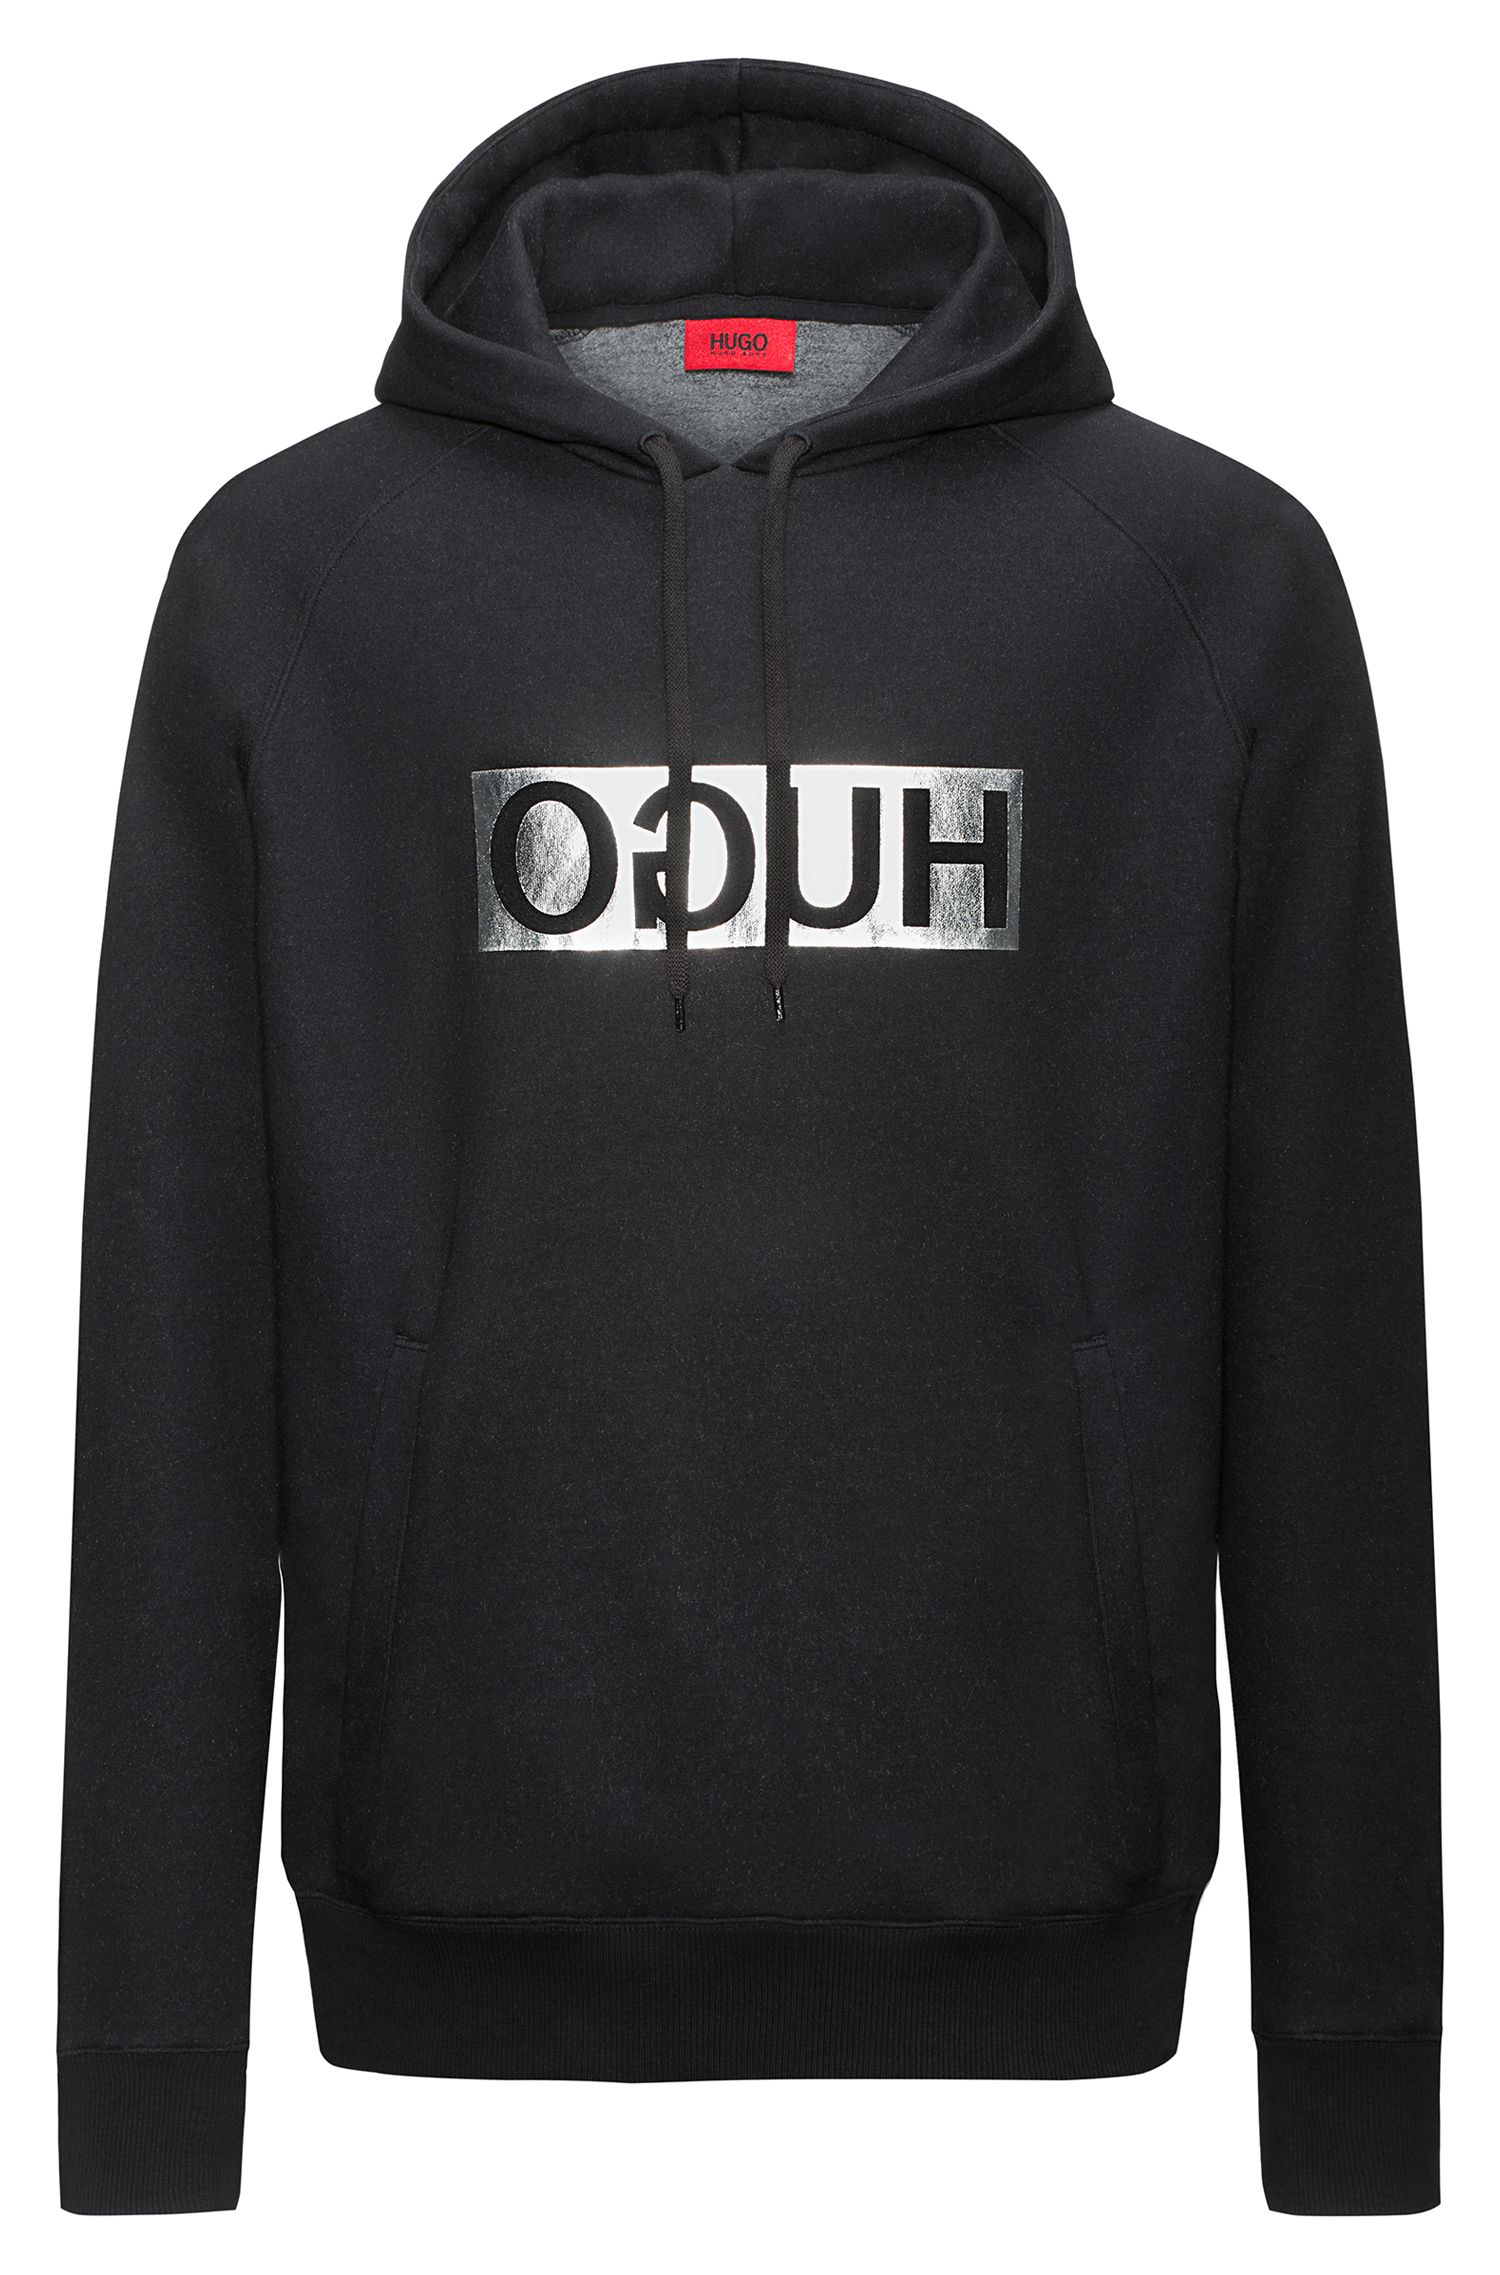 Reverse-logo hooded sweater in a cotton blend